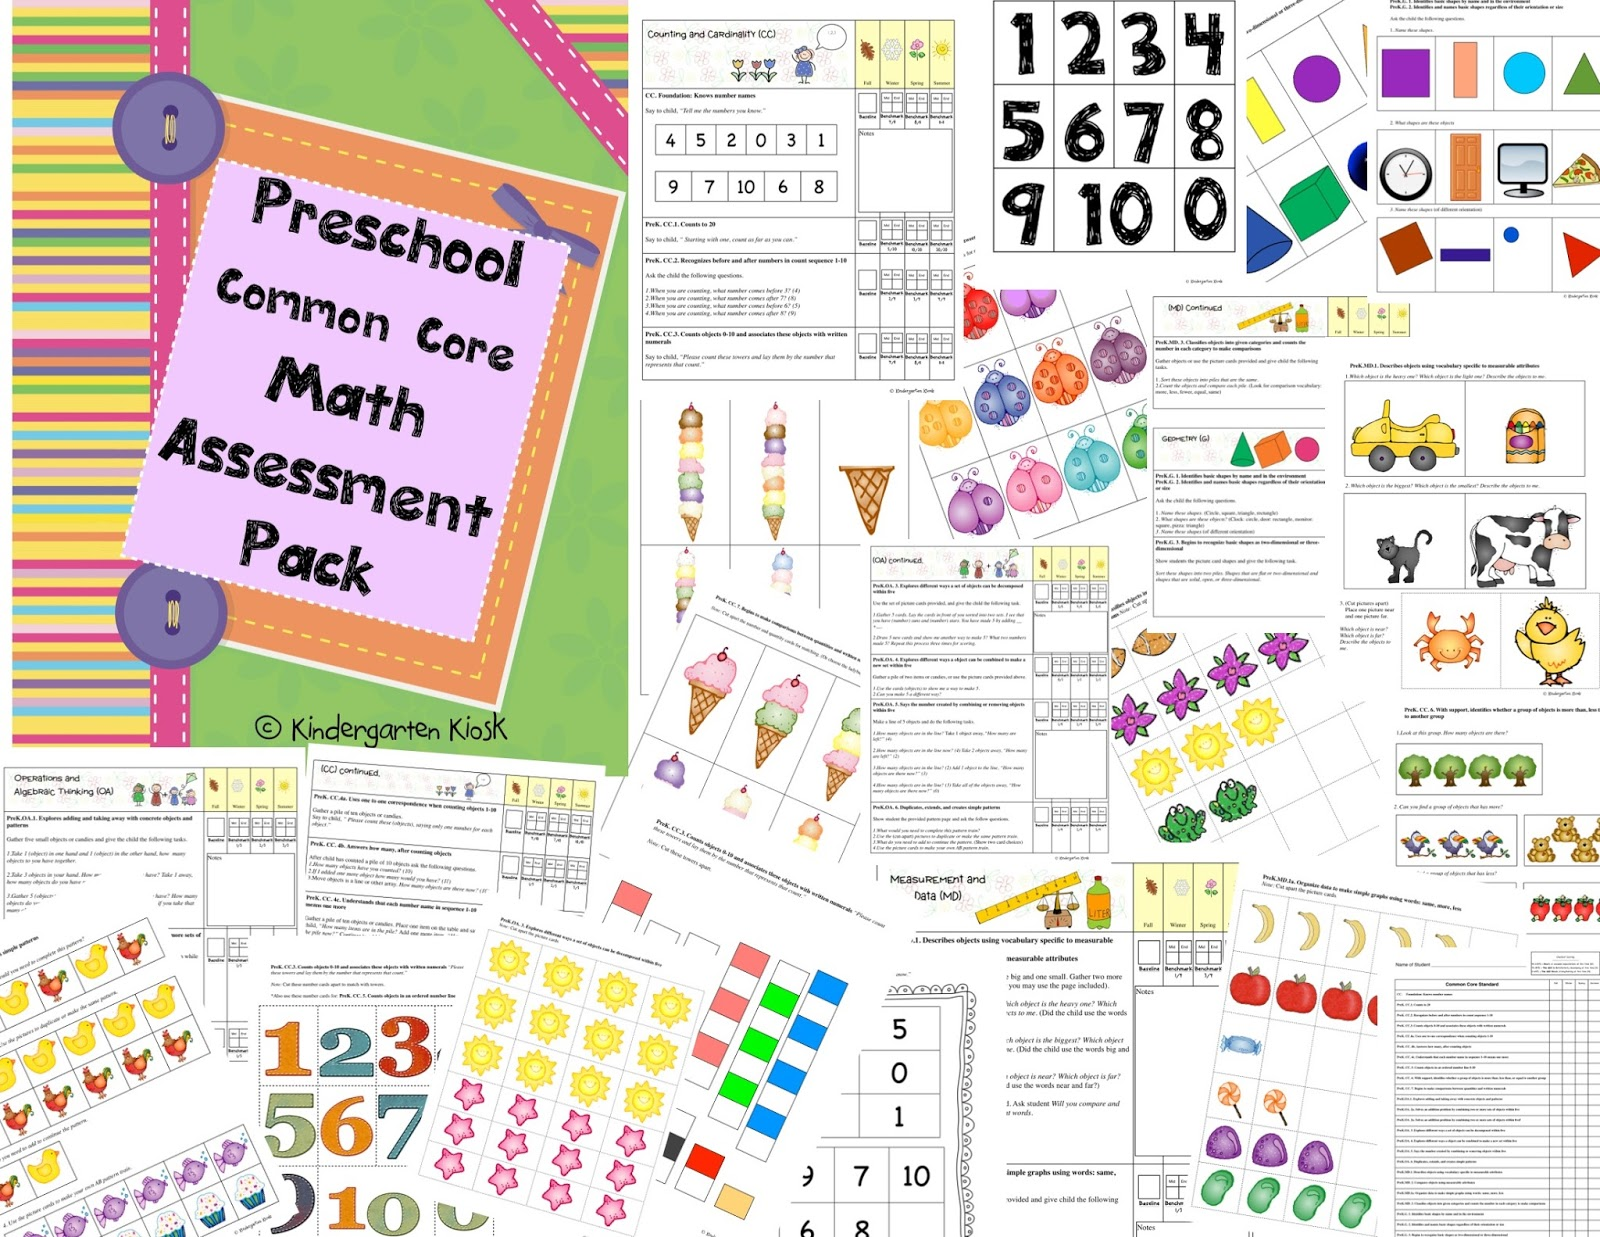 Kindergarten Kiosk Preschool Common Core Assessments